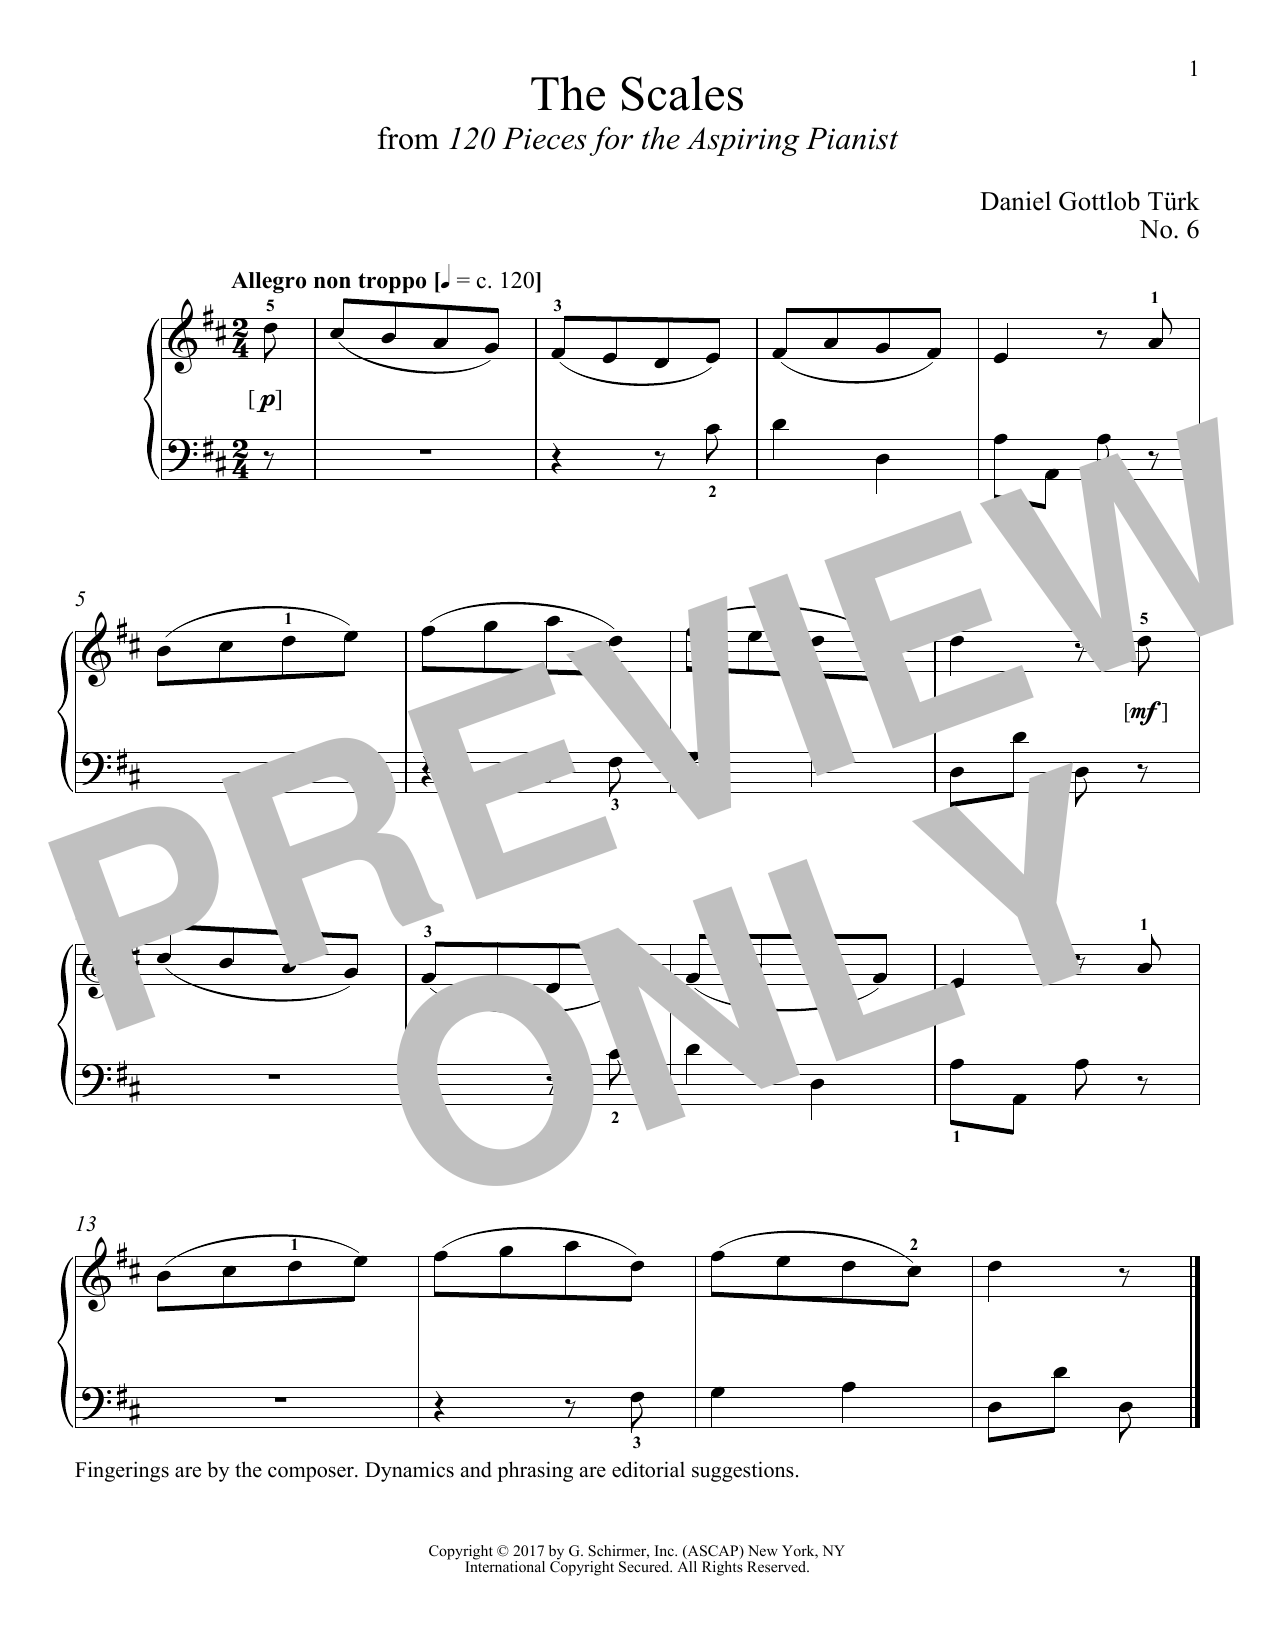 Daniel Gottlob Turk The Scales sheet music notes and chords